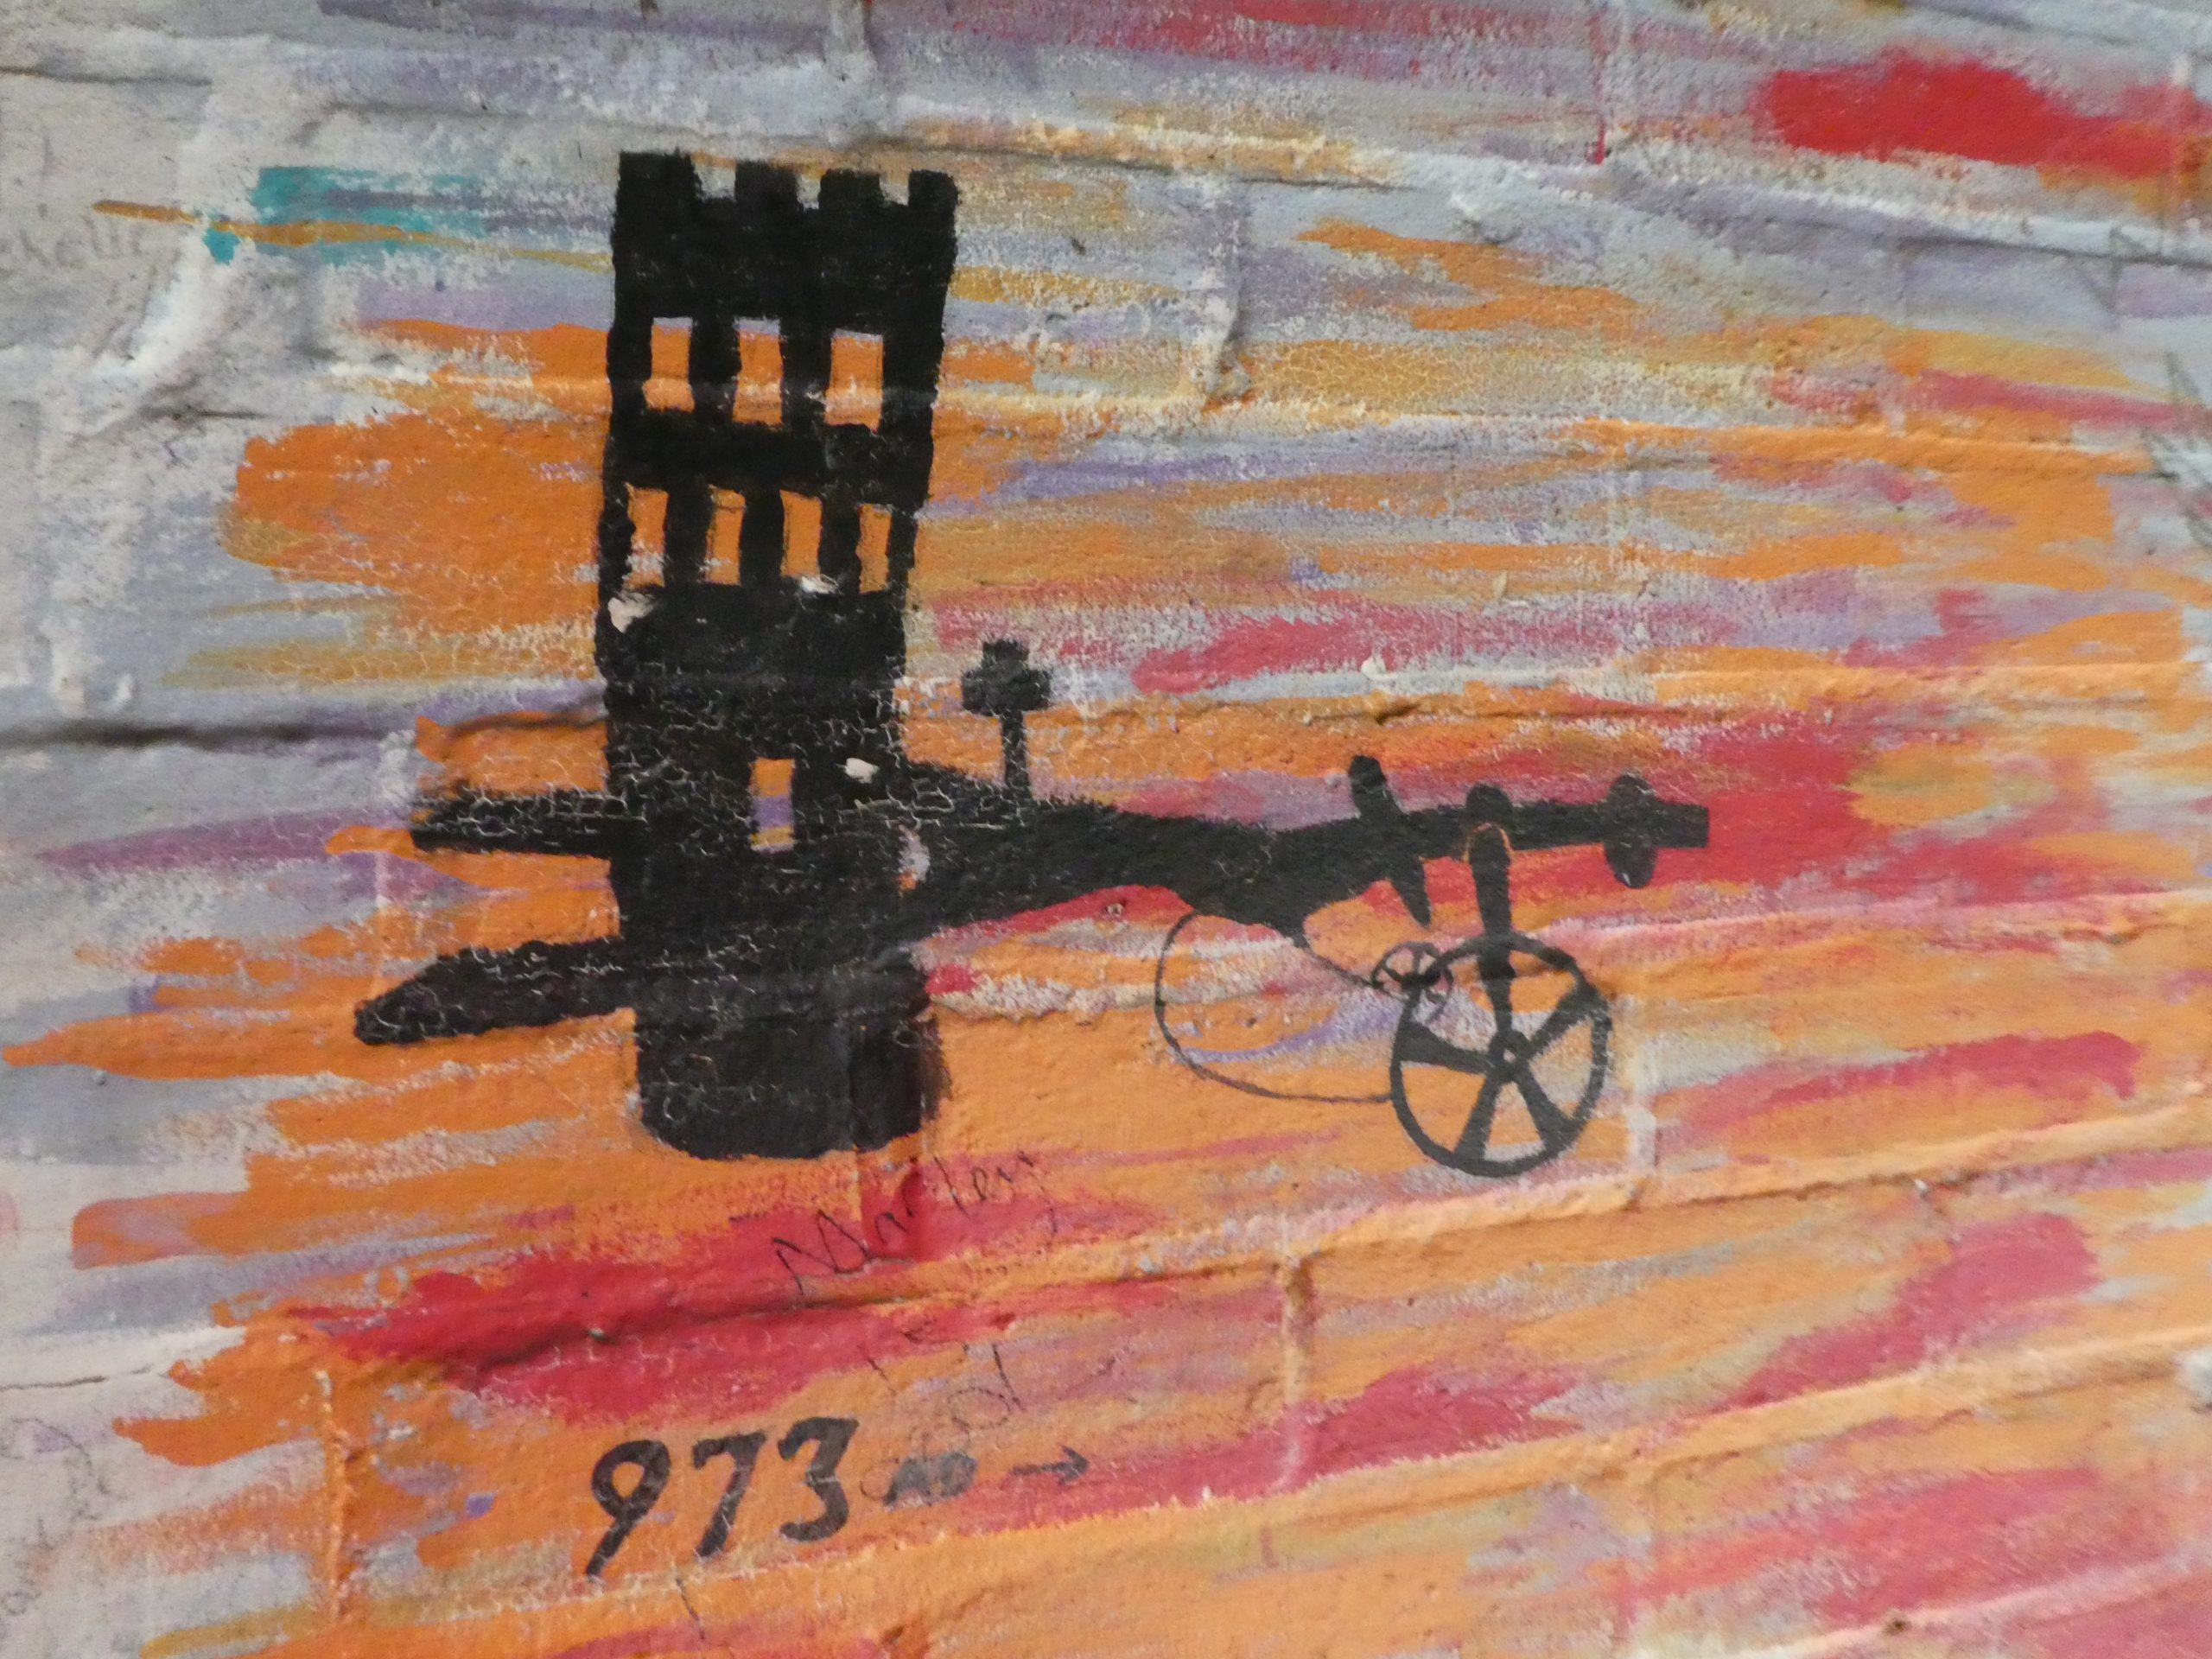 A painting of the village sign depicting a castle, an old-fashioned hand-driven plough and the date 973